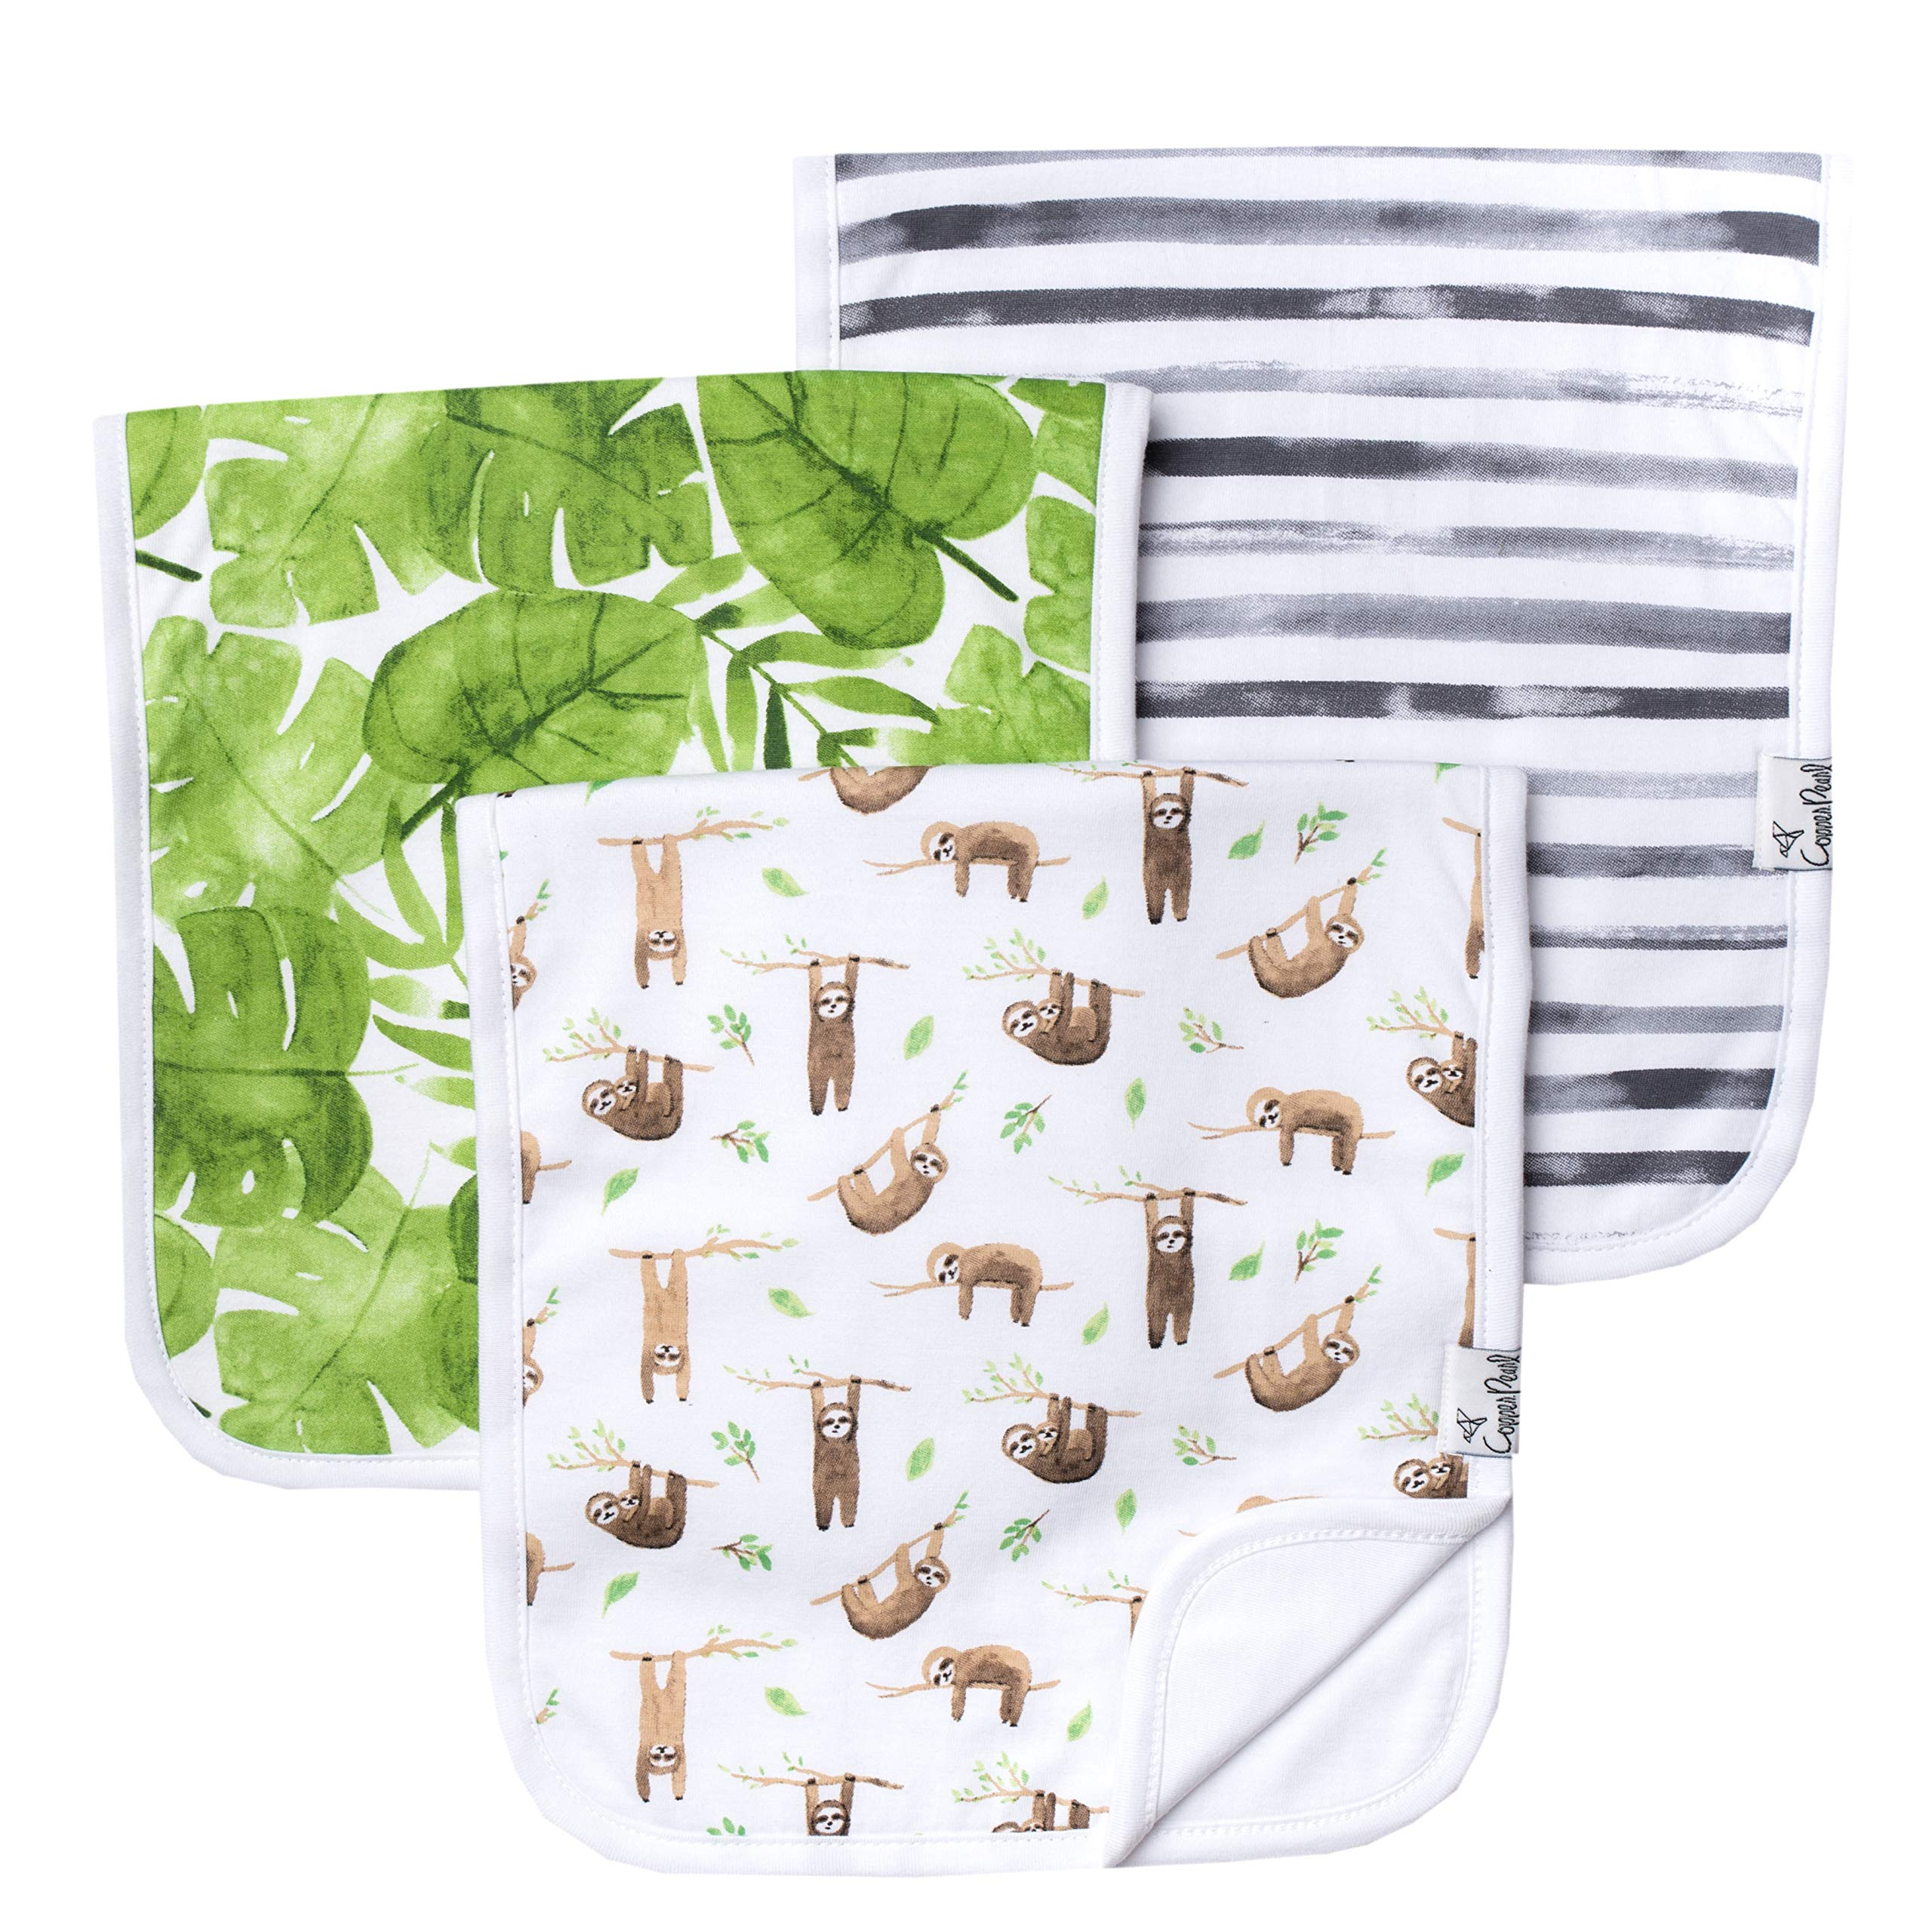 Baby Burp Cloth Large 21''x10'' Size Premium Absorbent Triple Layer 3 Pack Gift Set ''Noah'' by Copper Pearl by Copper Pearl